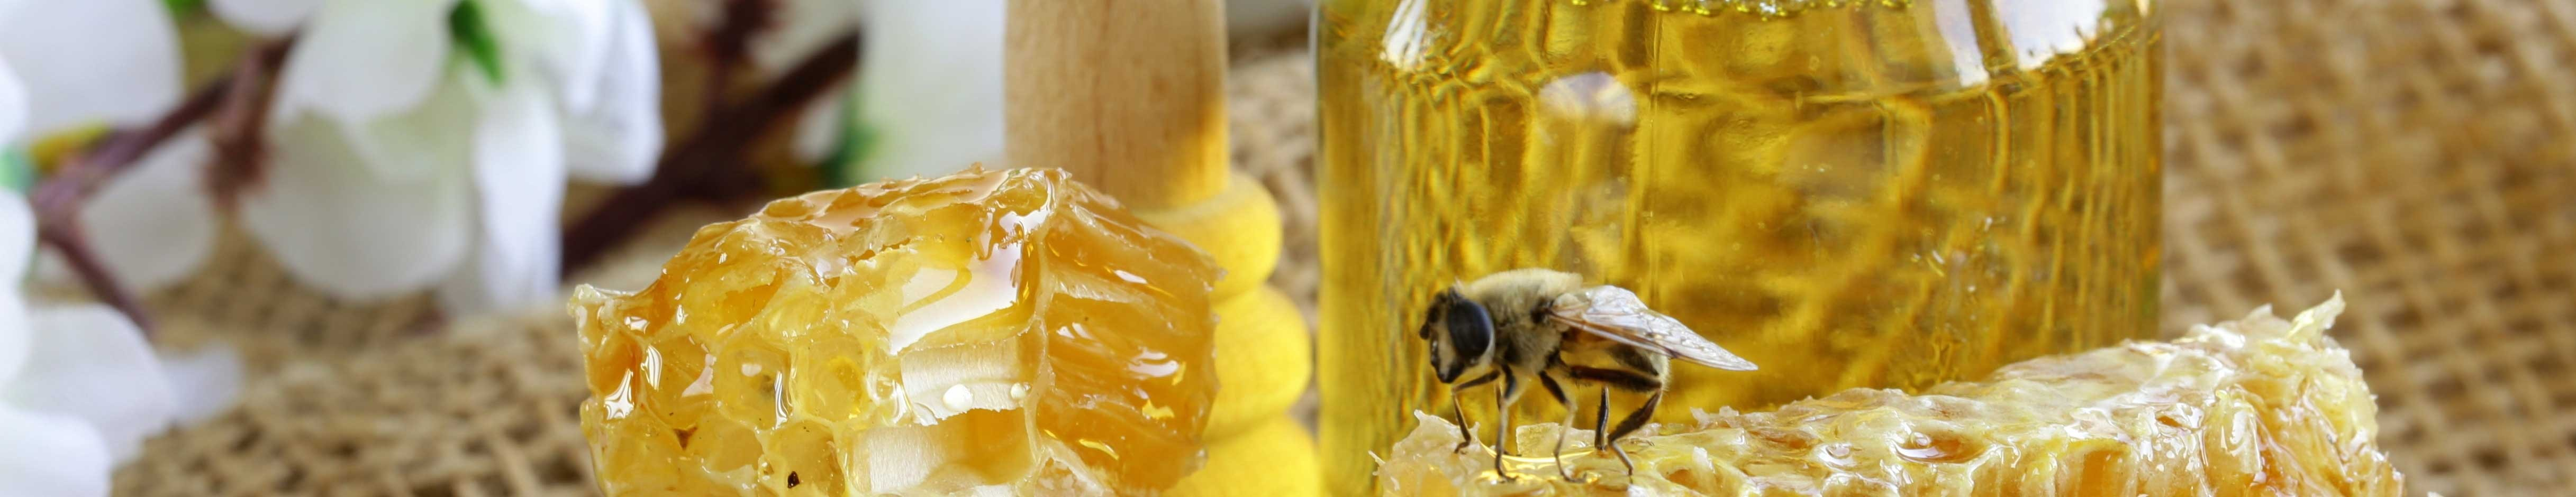 elite_alternatives_honey_bee_4868x940